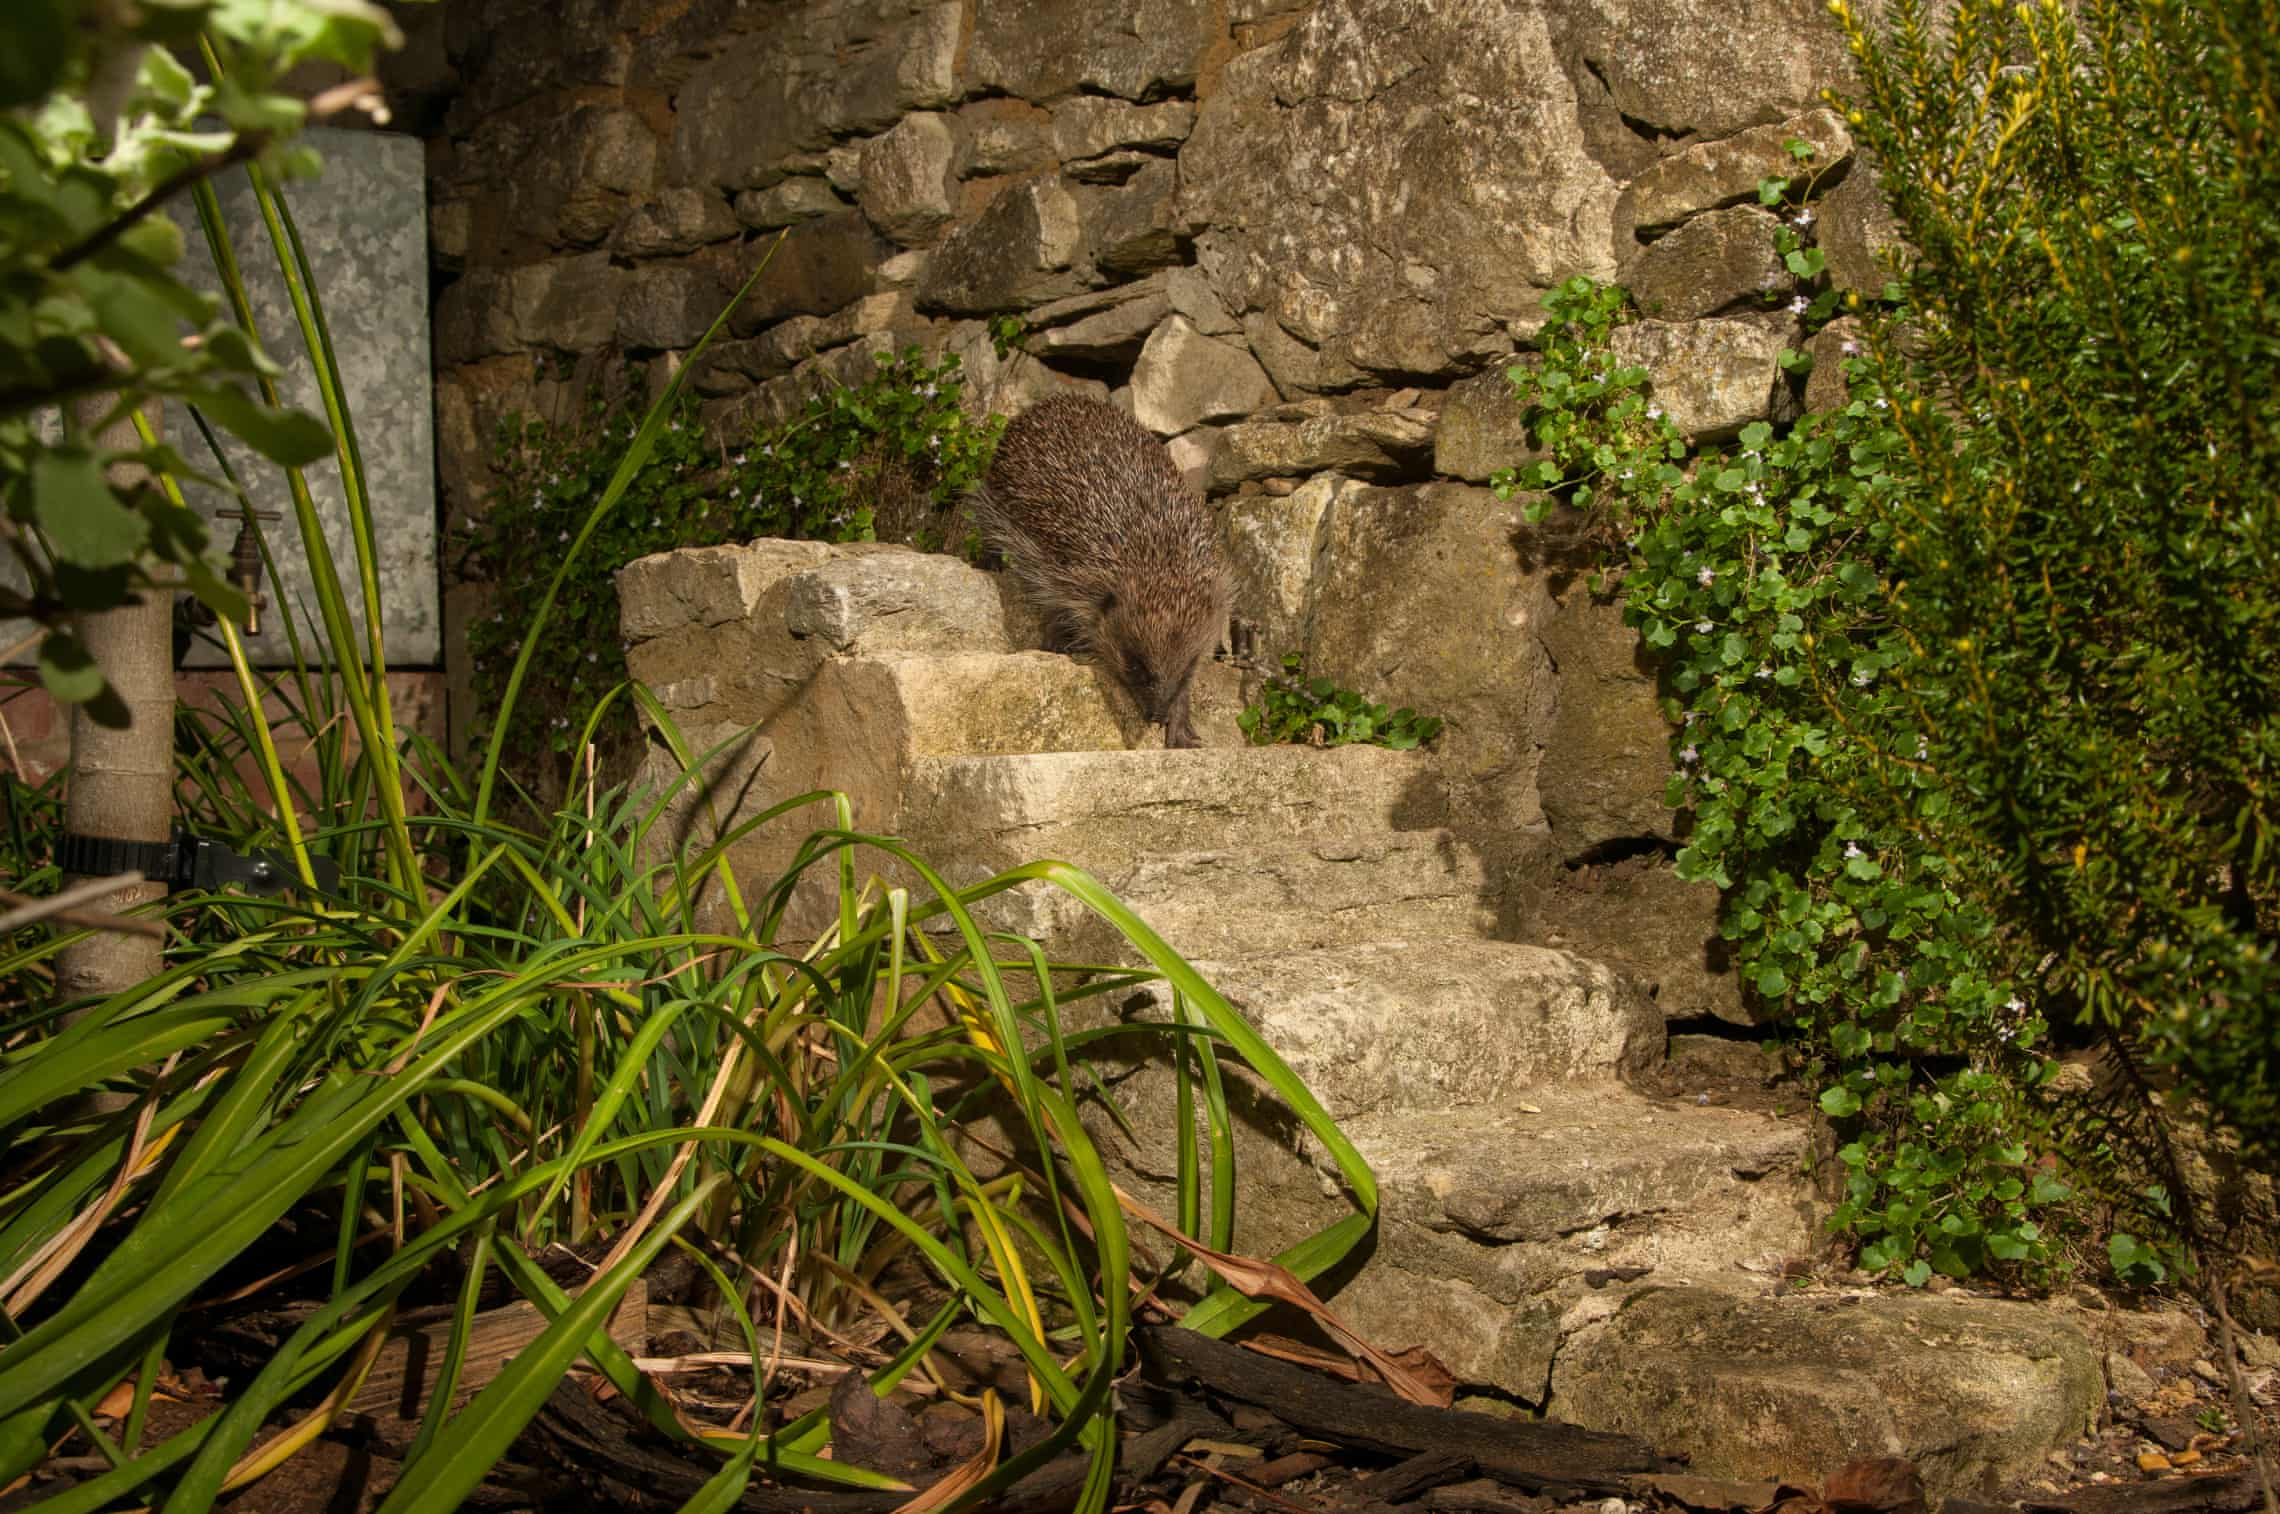 A hedghog opts to take the stairs. Photograph: Stephen Powles